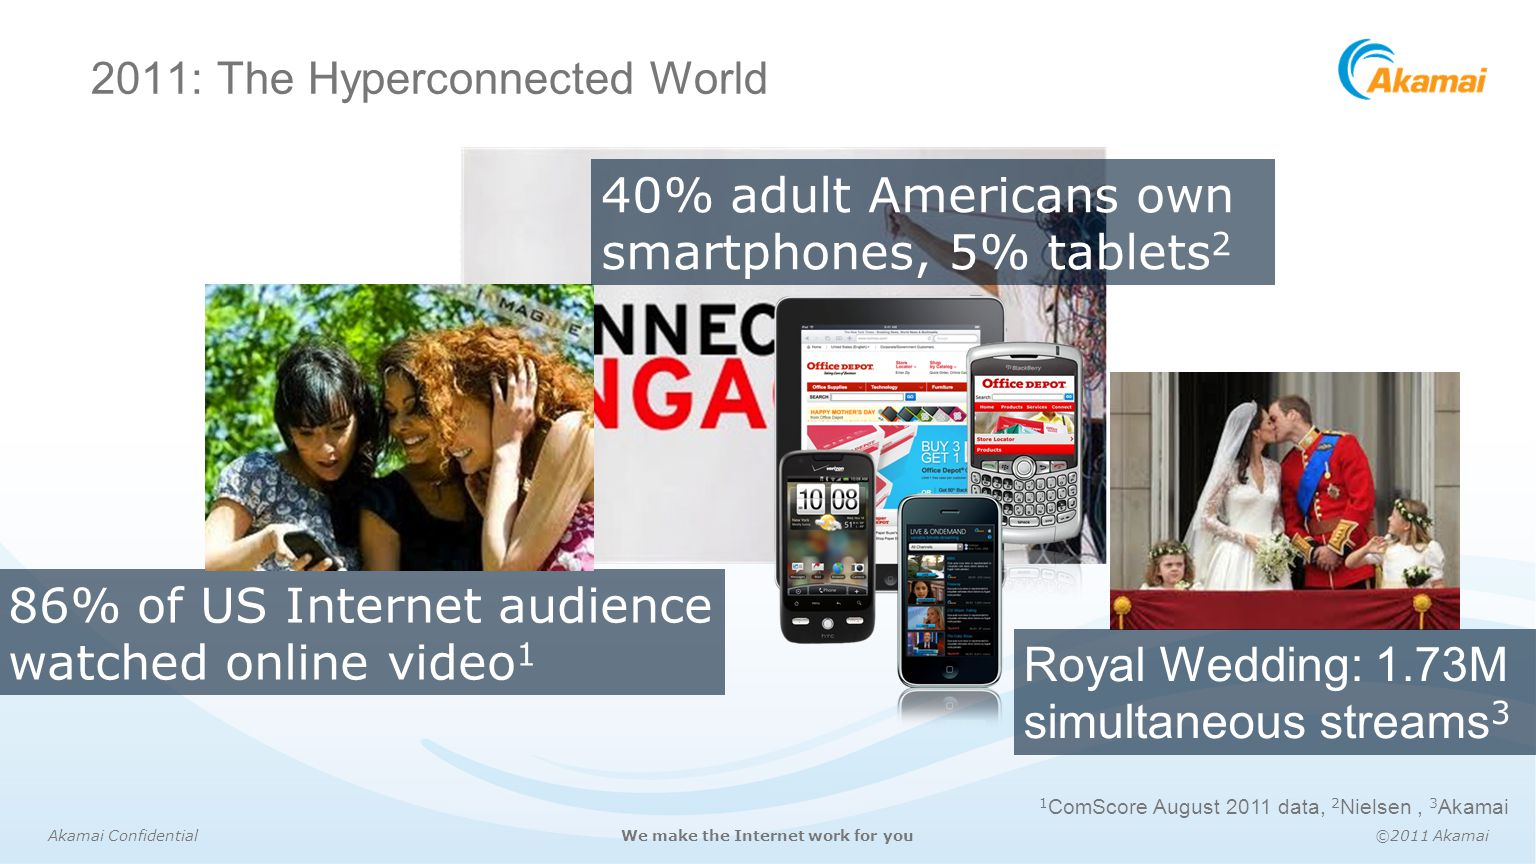 2011: The Hyperconnected World